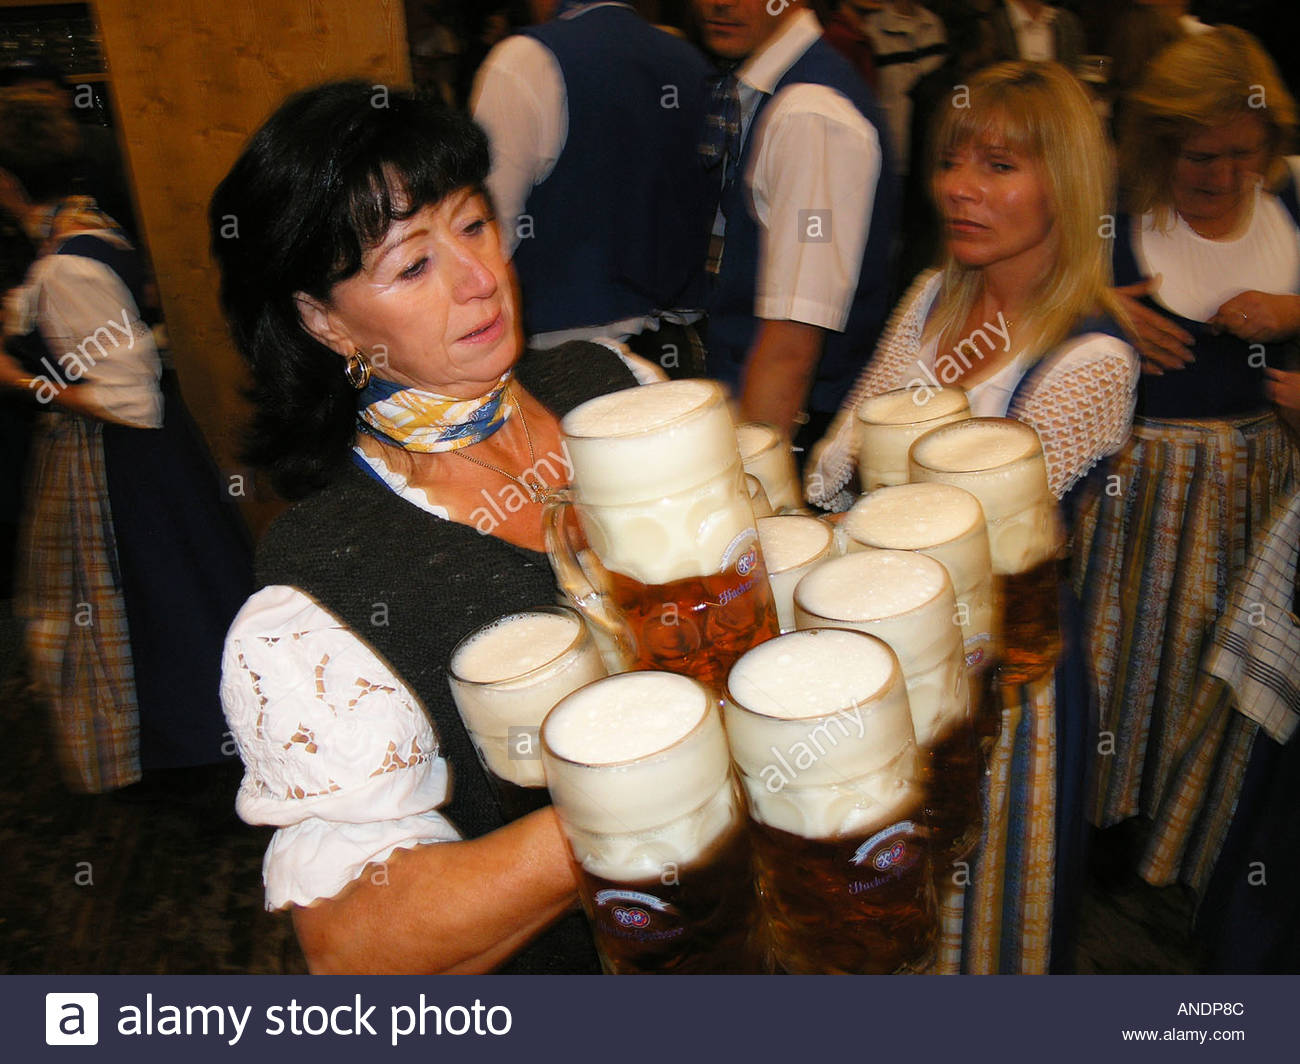 waitress-dressed-in-dirndl-serving-liter-glasses-of-beer-in-oktoberfest-ANDP8C